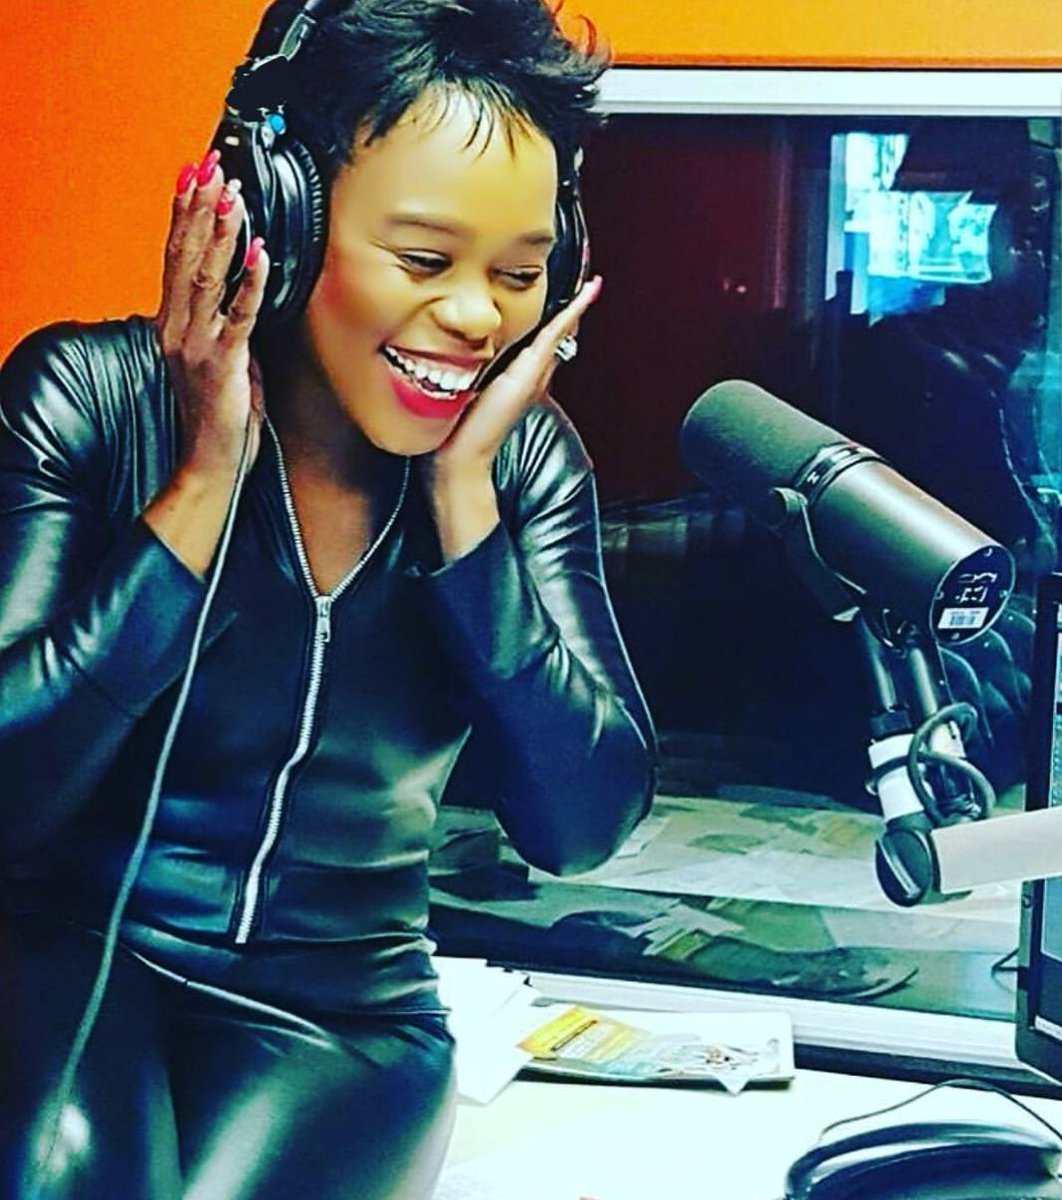 #WorldRadioDay #ILoveRadio I❤📻. Thank you so much to everyone who has played a part in growing my radio career... For supporting, for listening, for tweeting, for calling, for feedback. I appreciate you 🙏🏽.